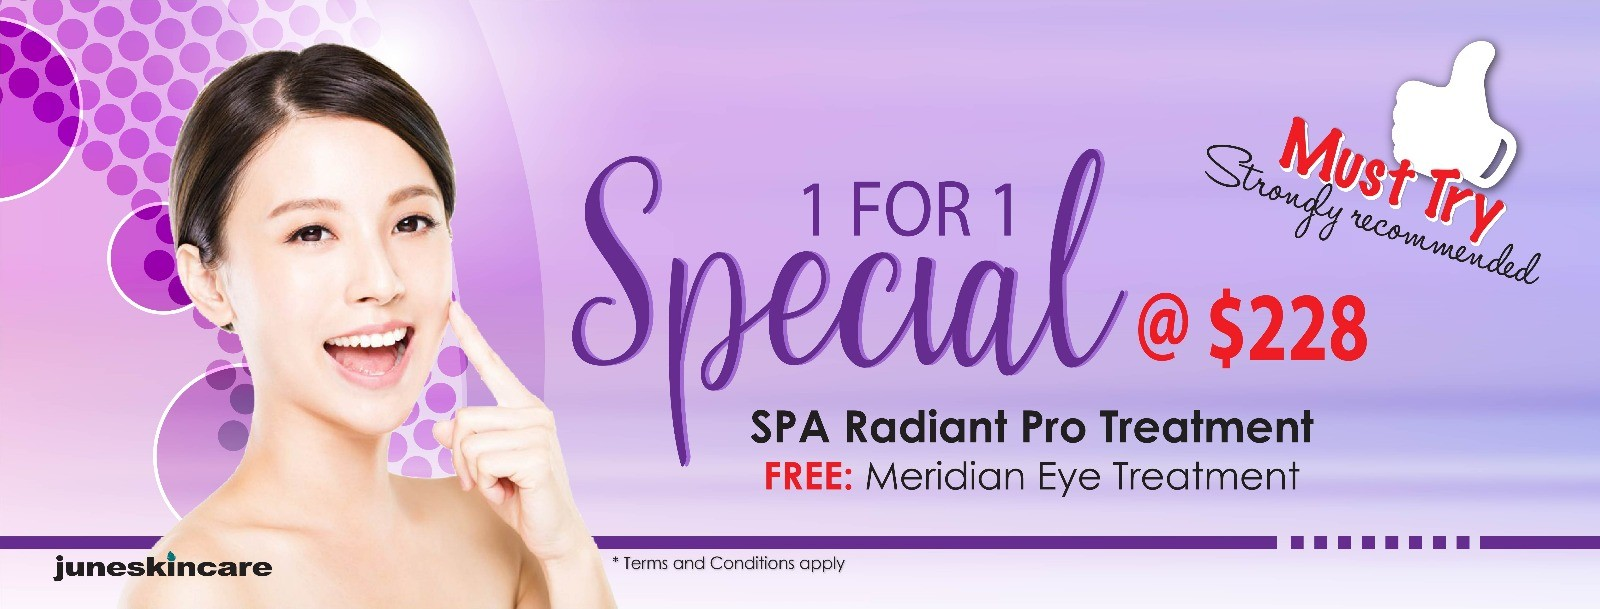 Spa Radiant Pro Treatment Special